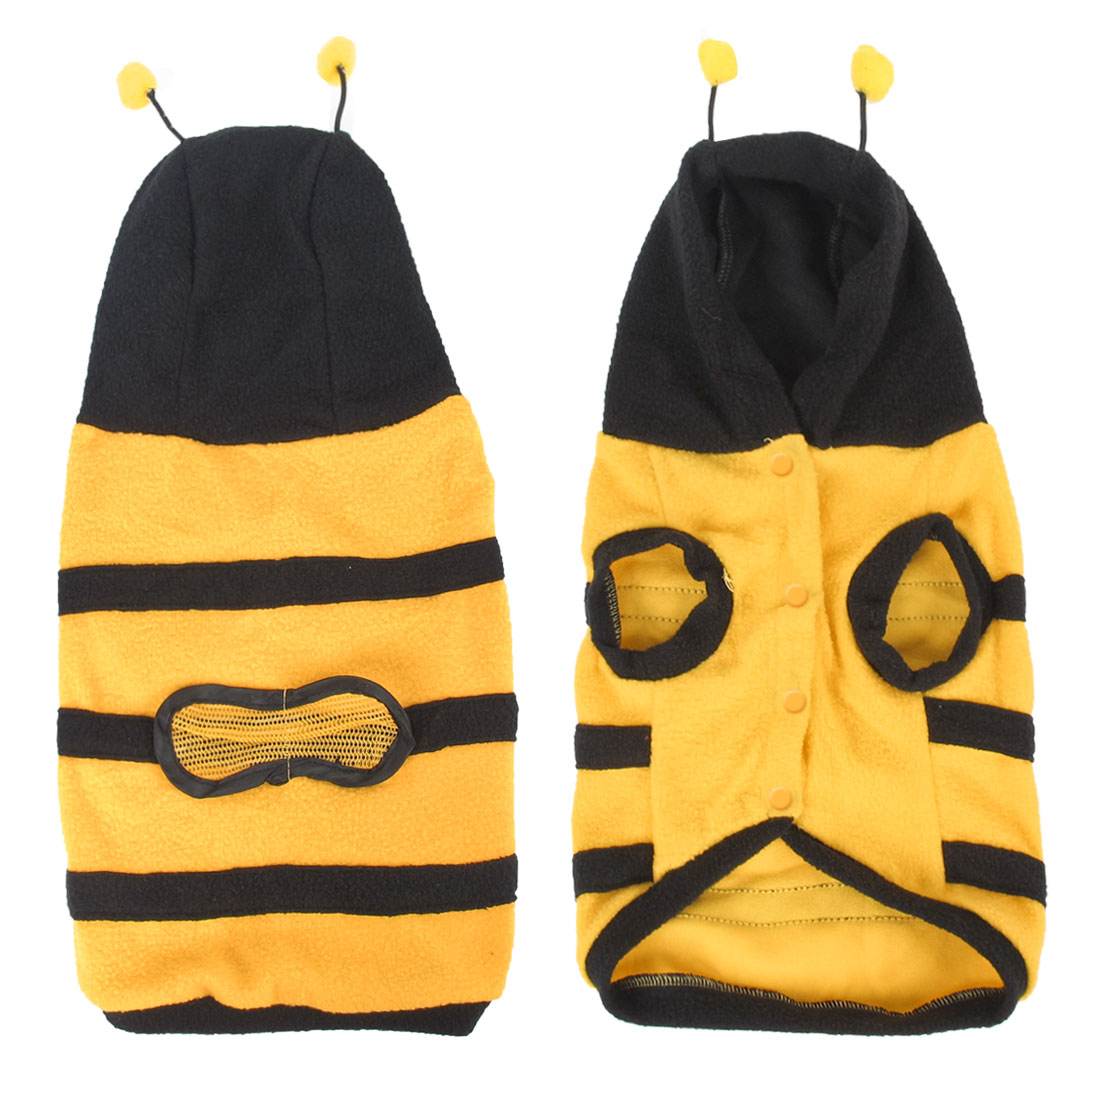 Unique Bargains Pet Dog Doggie Yellow Black Bee Design Hooded Single Breasted Apparel Clothes L